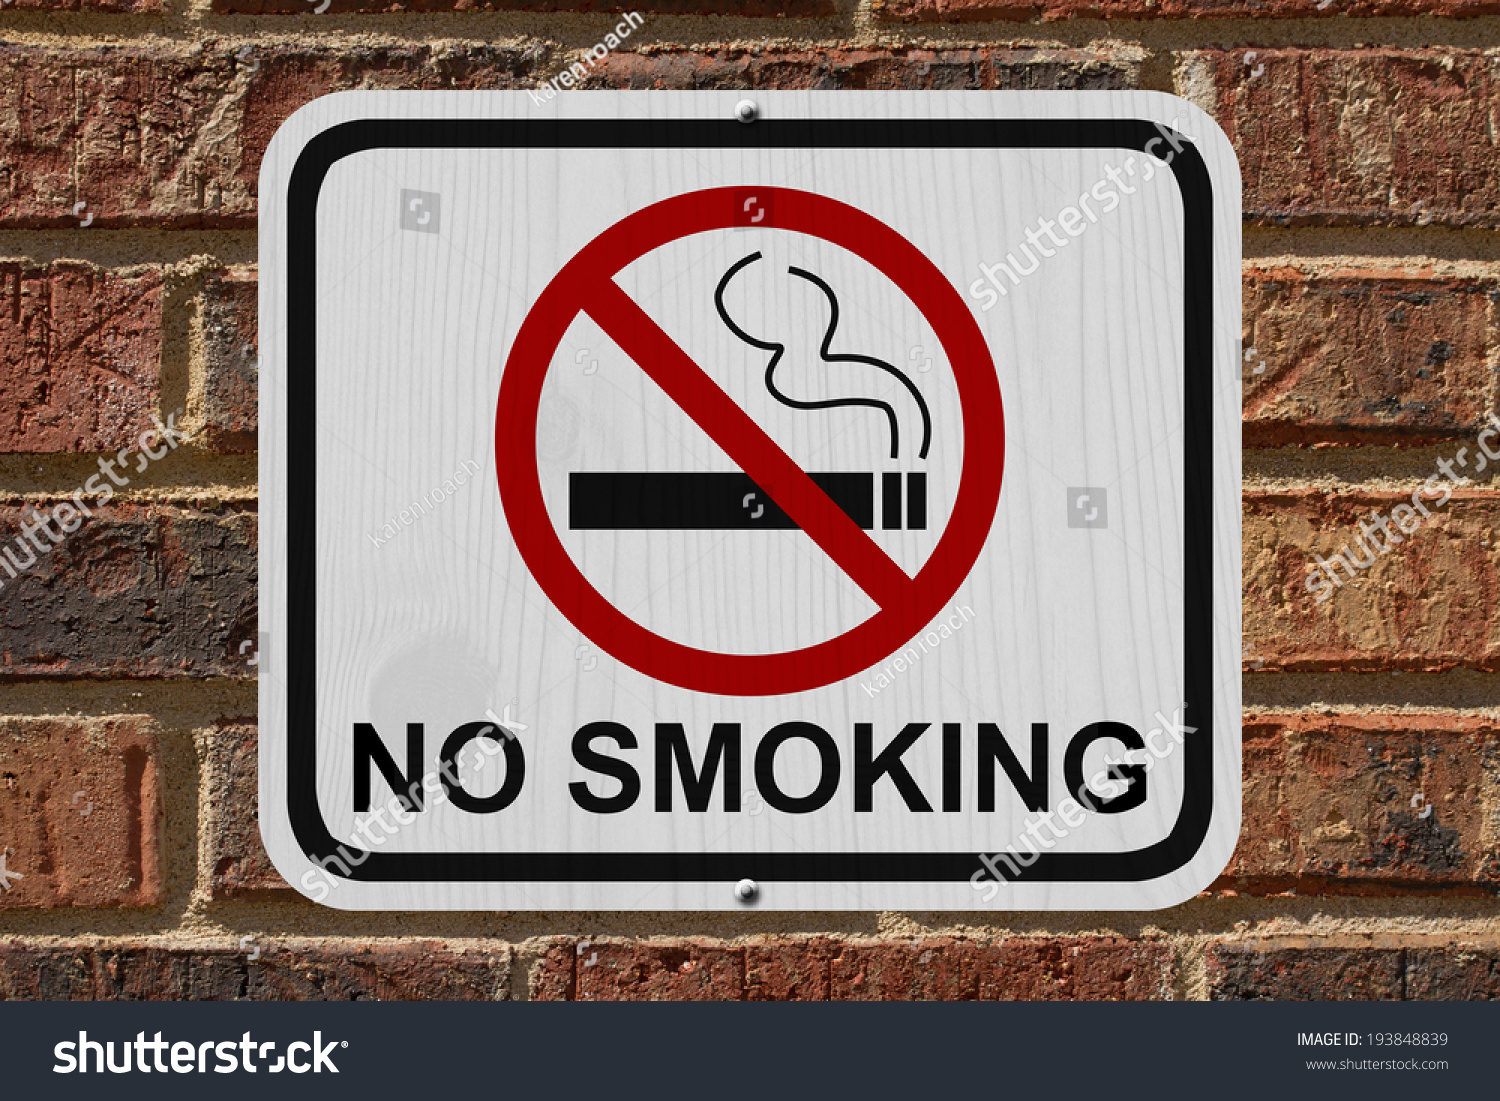 No smoking sign red white sign stock photo 193848839 shutterstock no smoking sign an red and white sign with cigarette icon and not symbol with buycottarizona Images